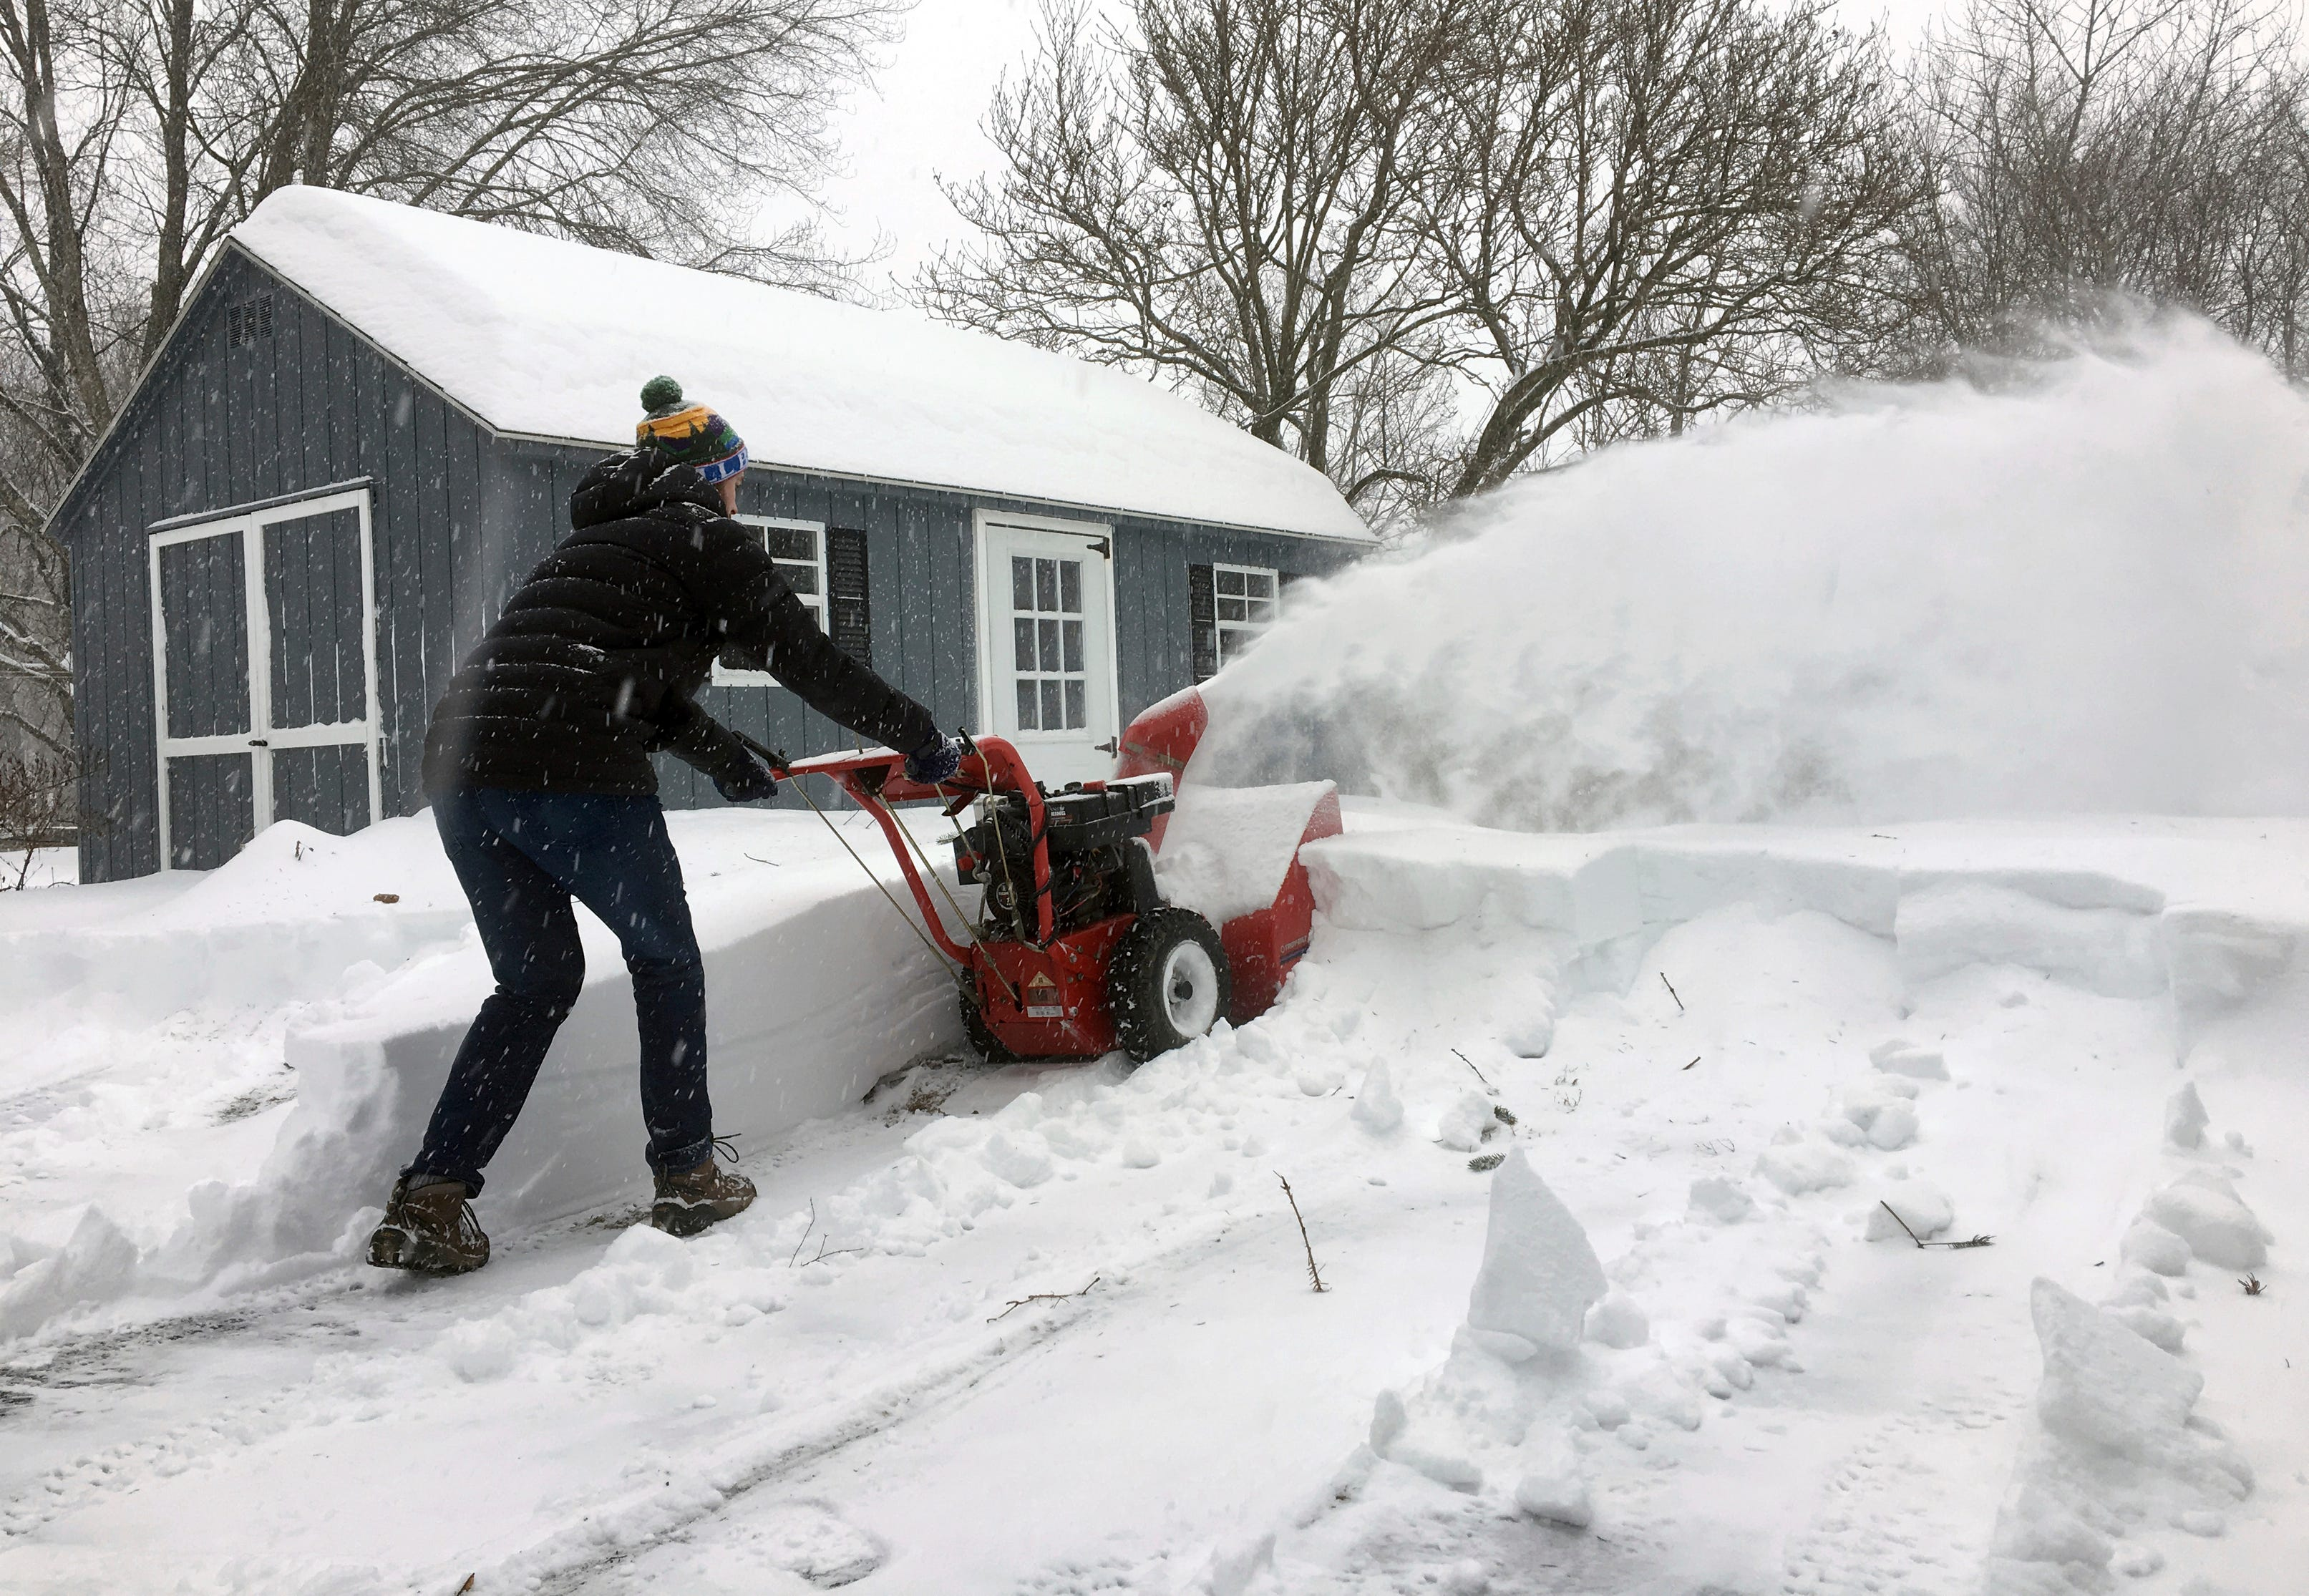 Relentless winter: Snowstorm pounds central U.S.; brutal cold will follow